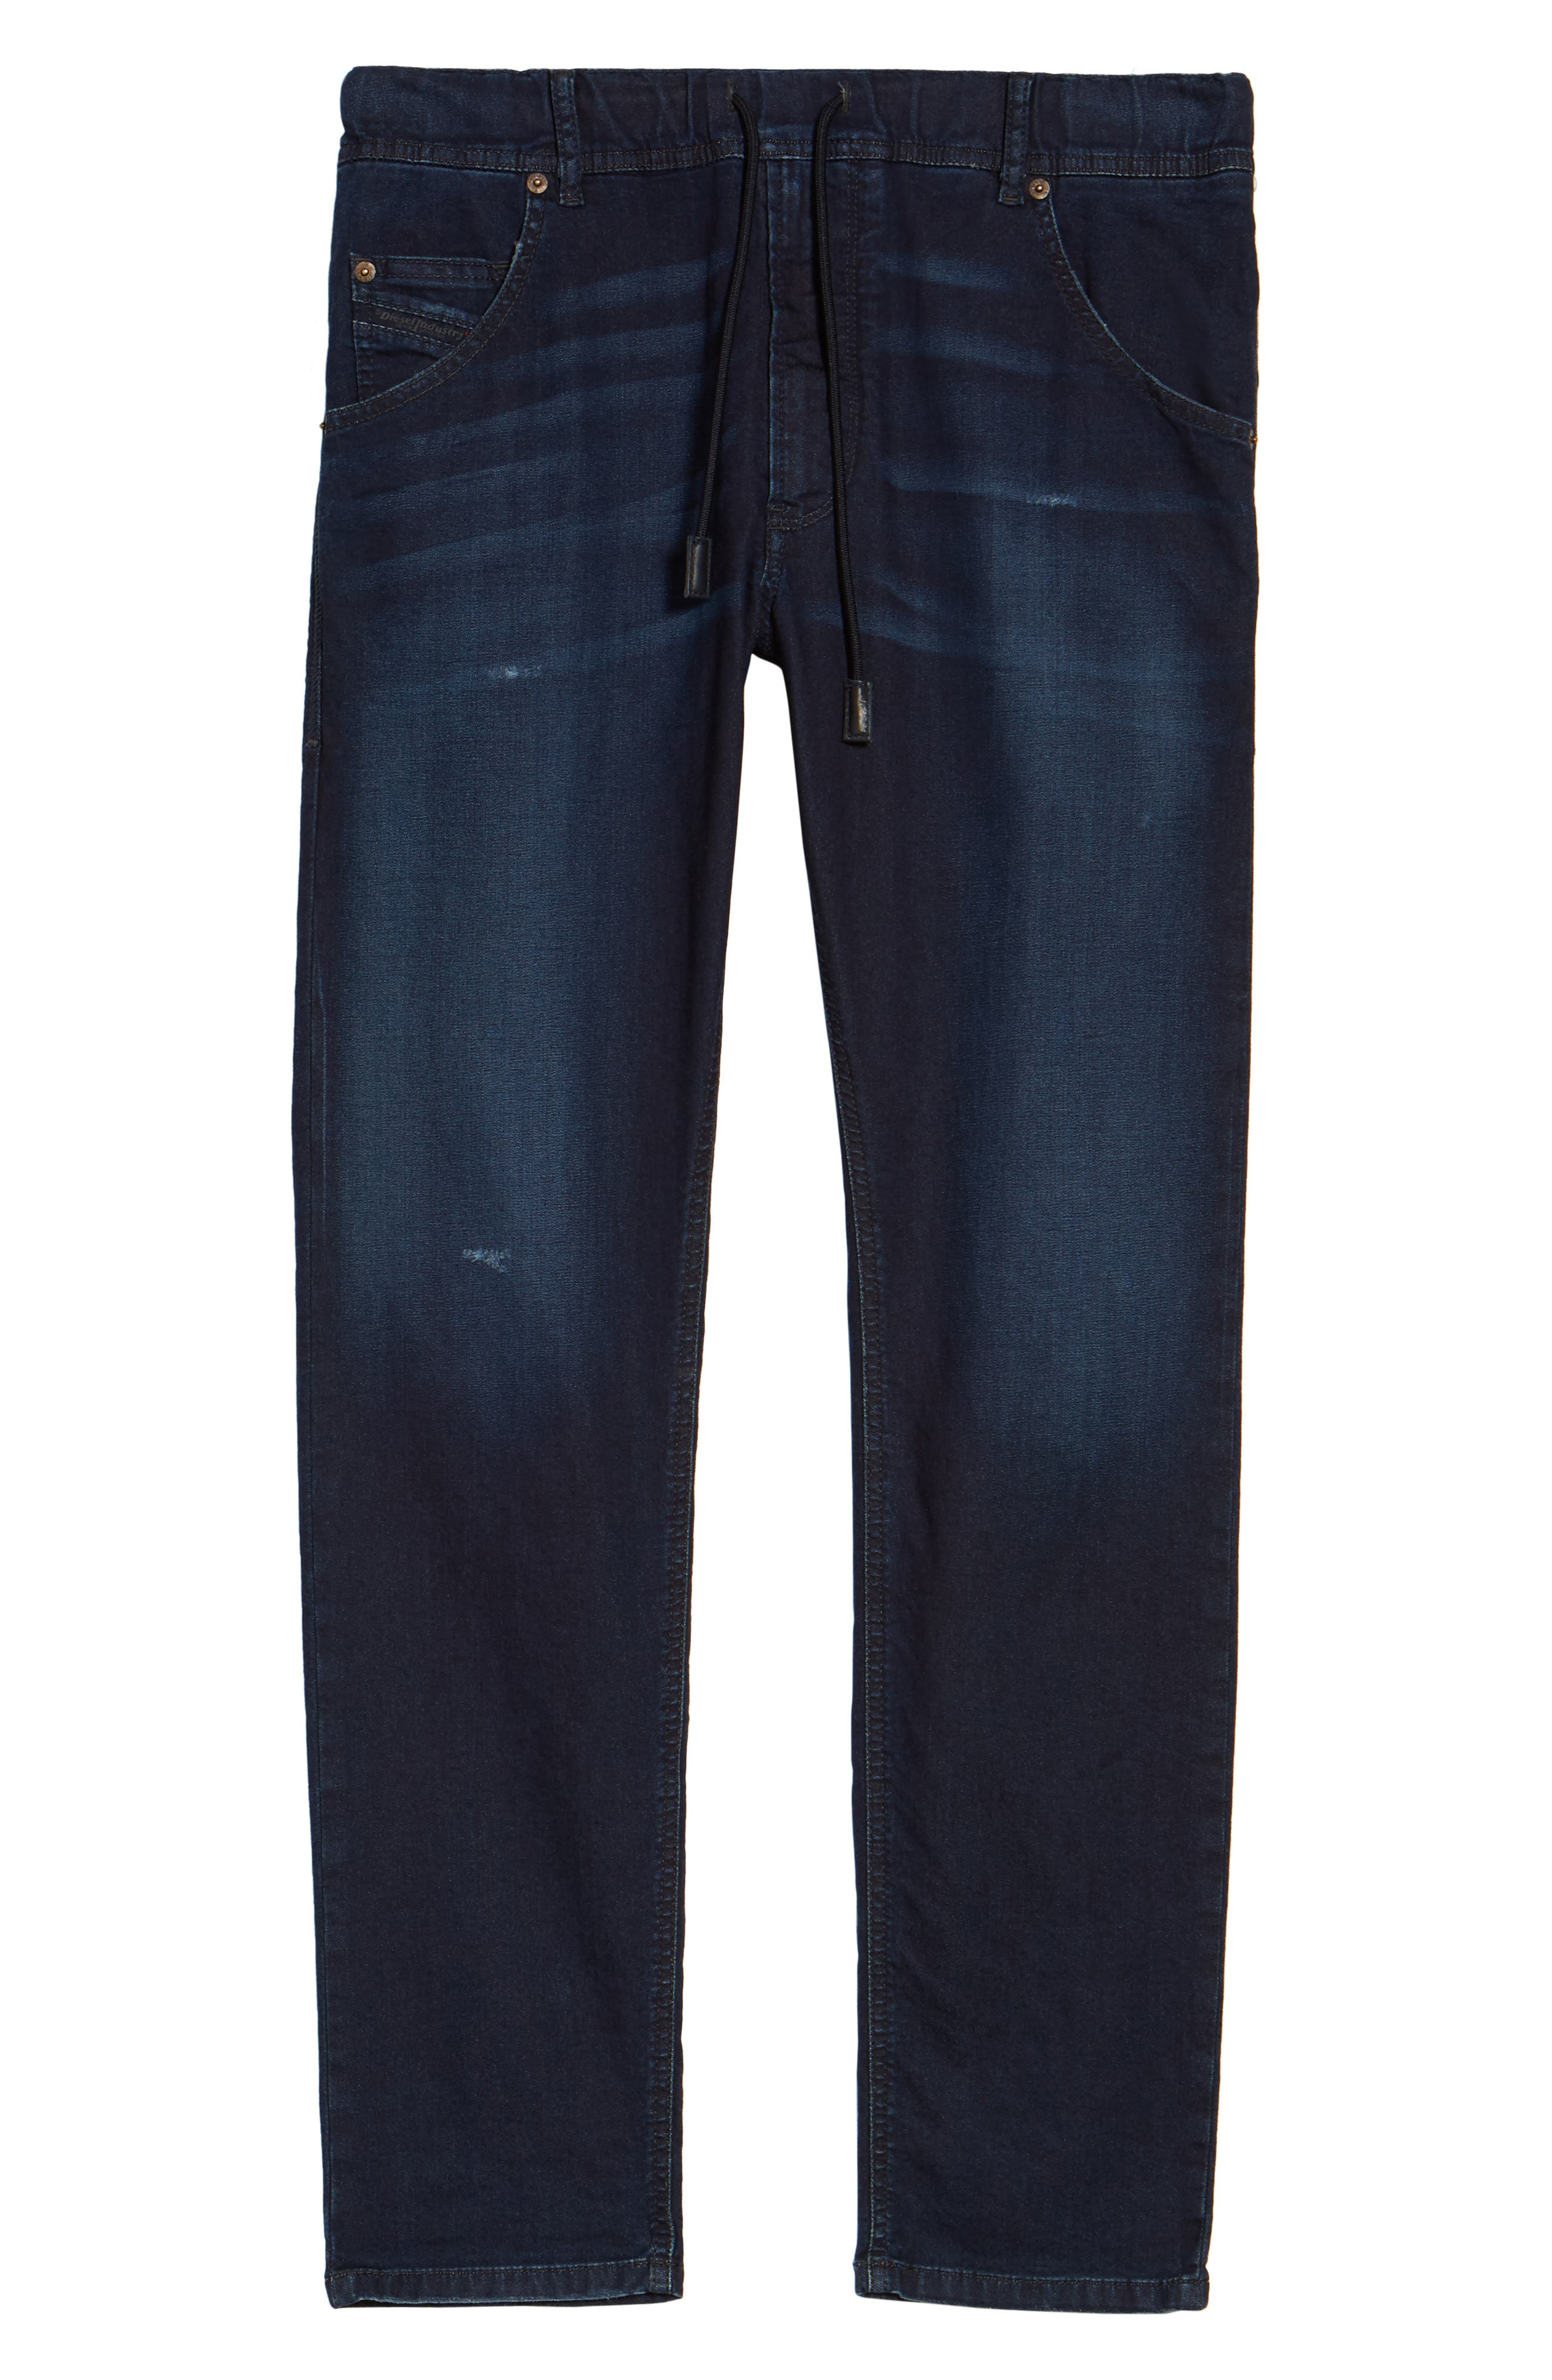 Krooley Slouchy Skinny Jeans,                             Alternate thumbnail 6, color,                             900